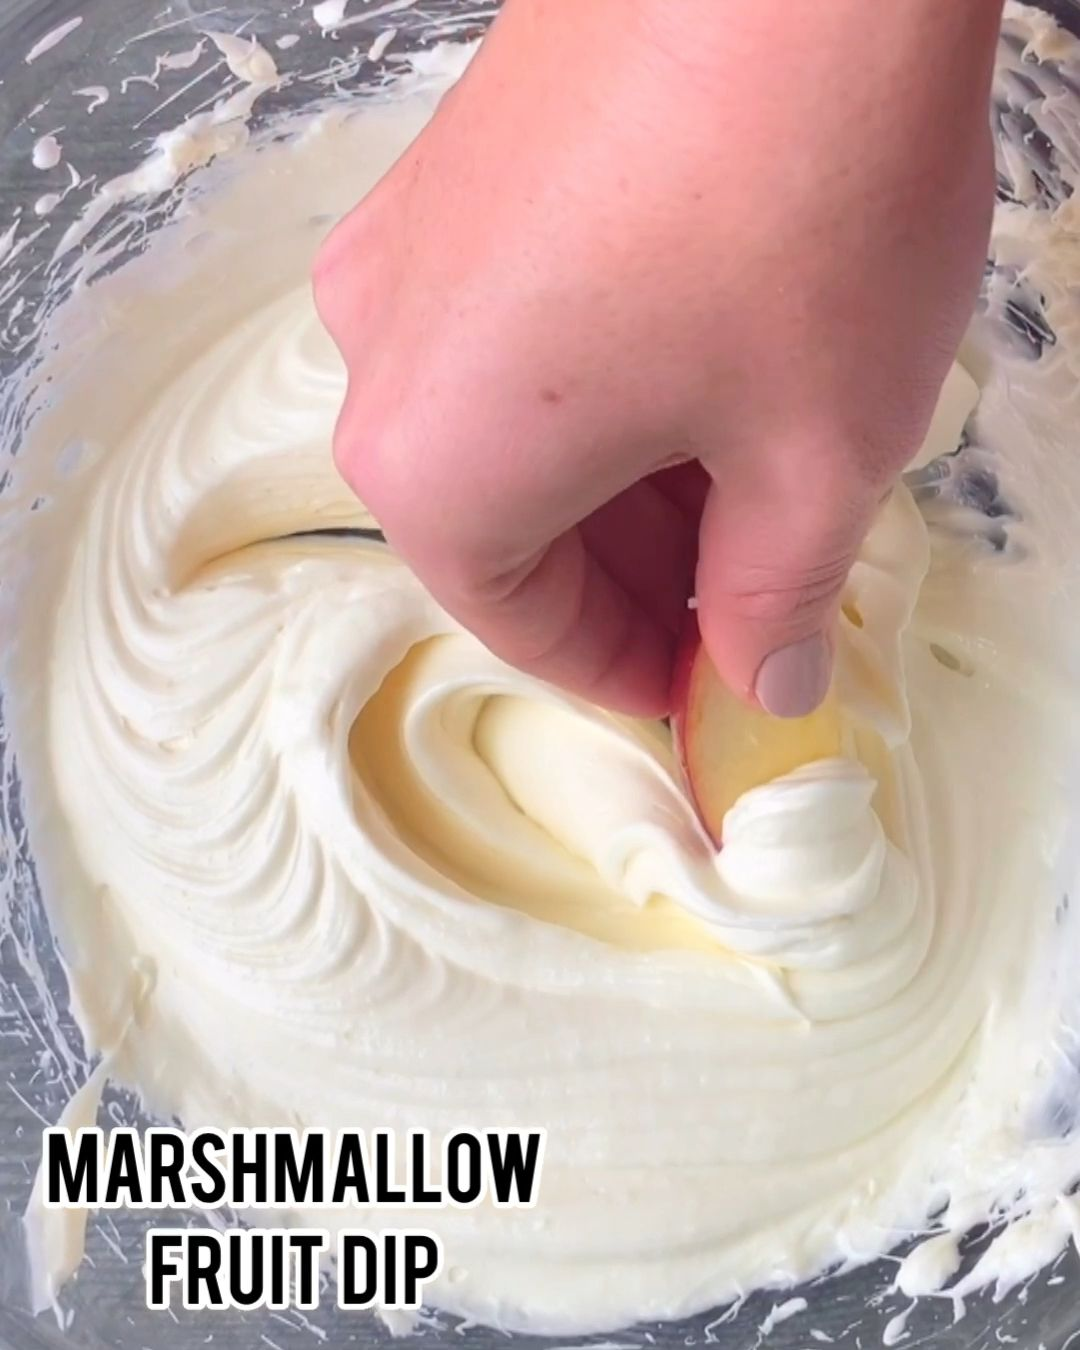 Marshmallow fruit dip is a 2 ingredient fruit dip that is super fluffy and amazing for fruit or pretzel dips. If you need a party snack in an instant, cream cheese and marshmallow fluff to the rescue!  #fruitdip #dip #appetizer #fruit